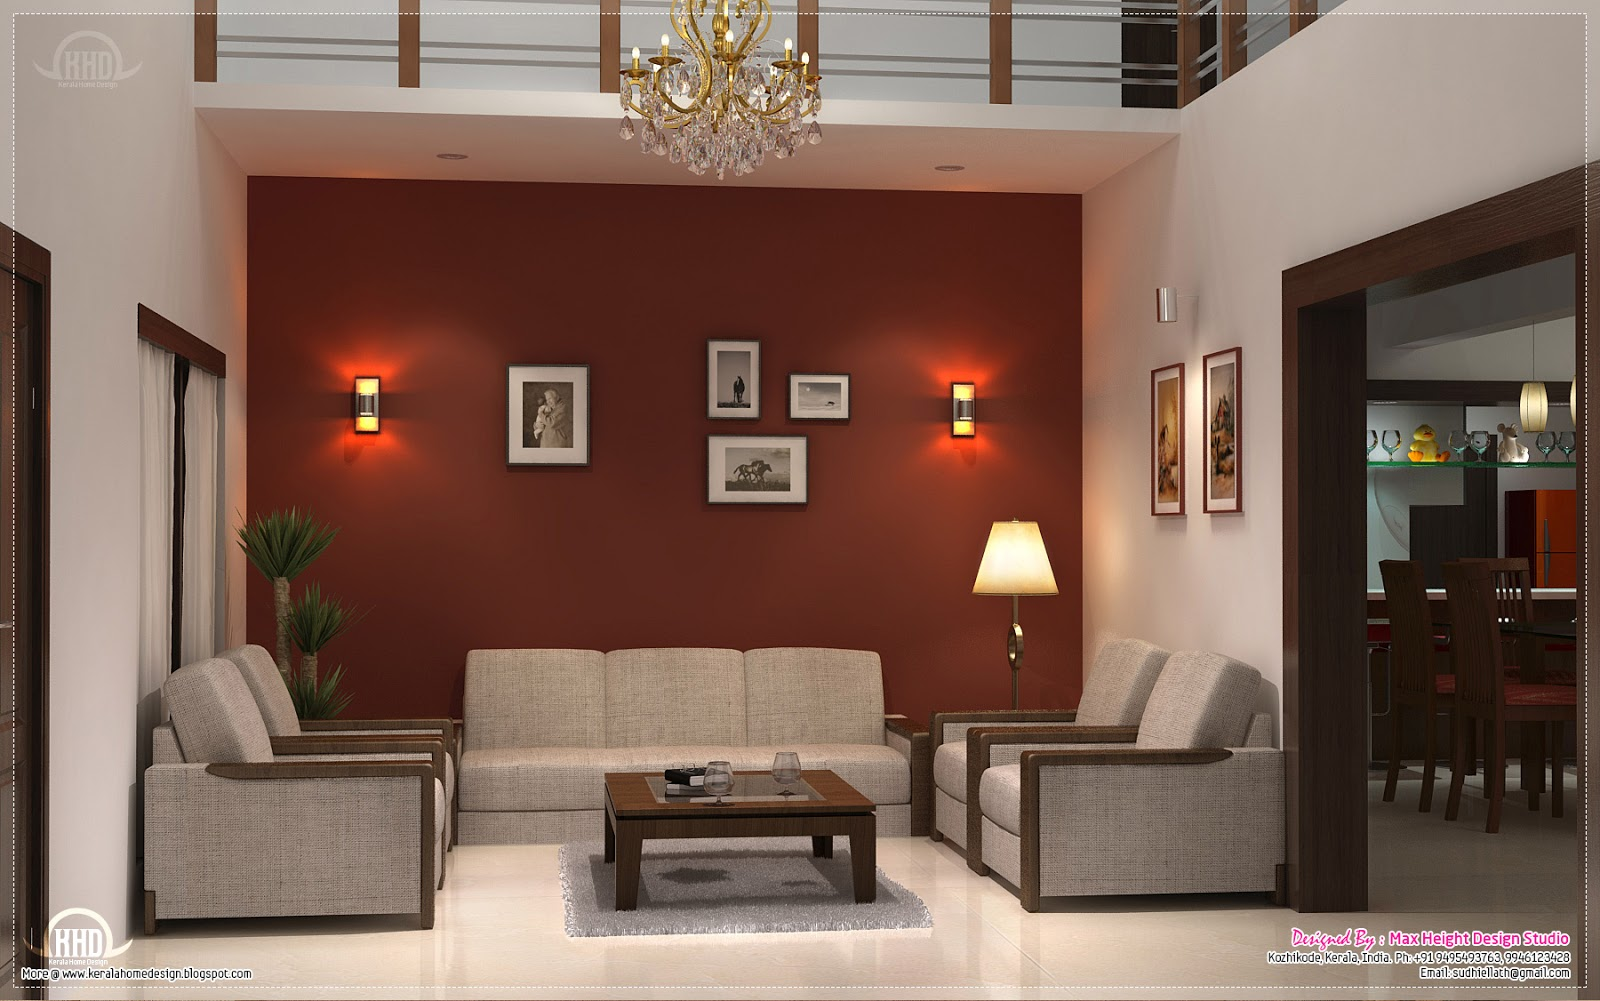 Home interior design ideas kerala home design and floor for Home interior designs in india photos